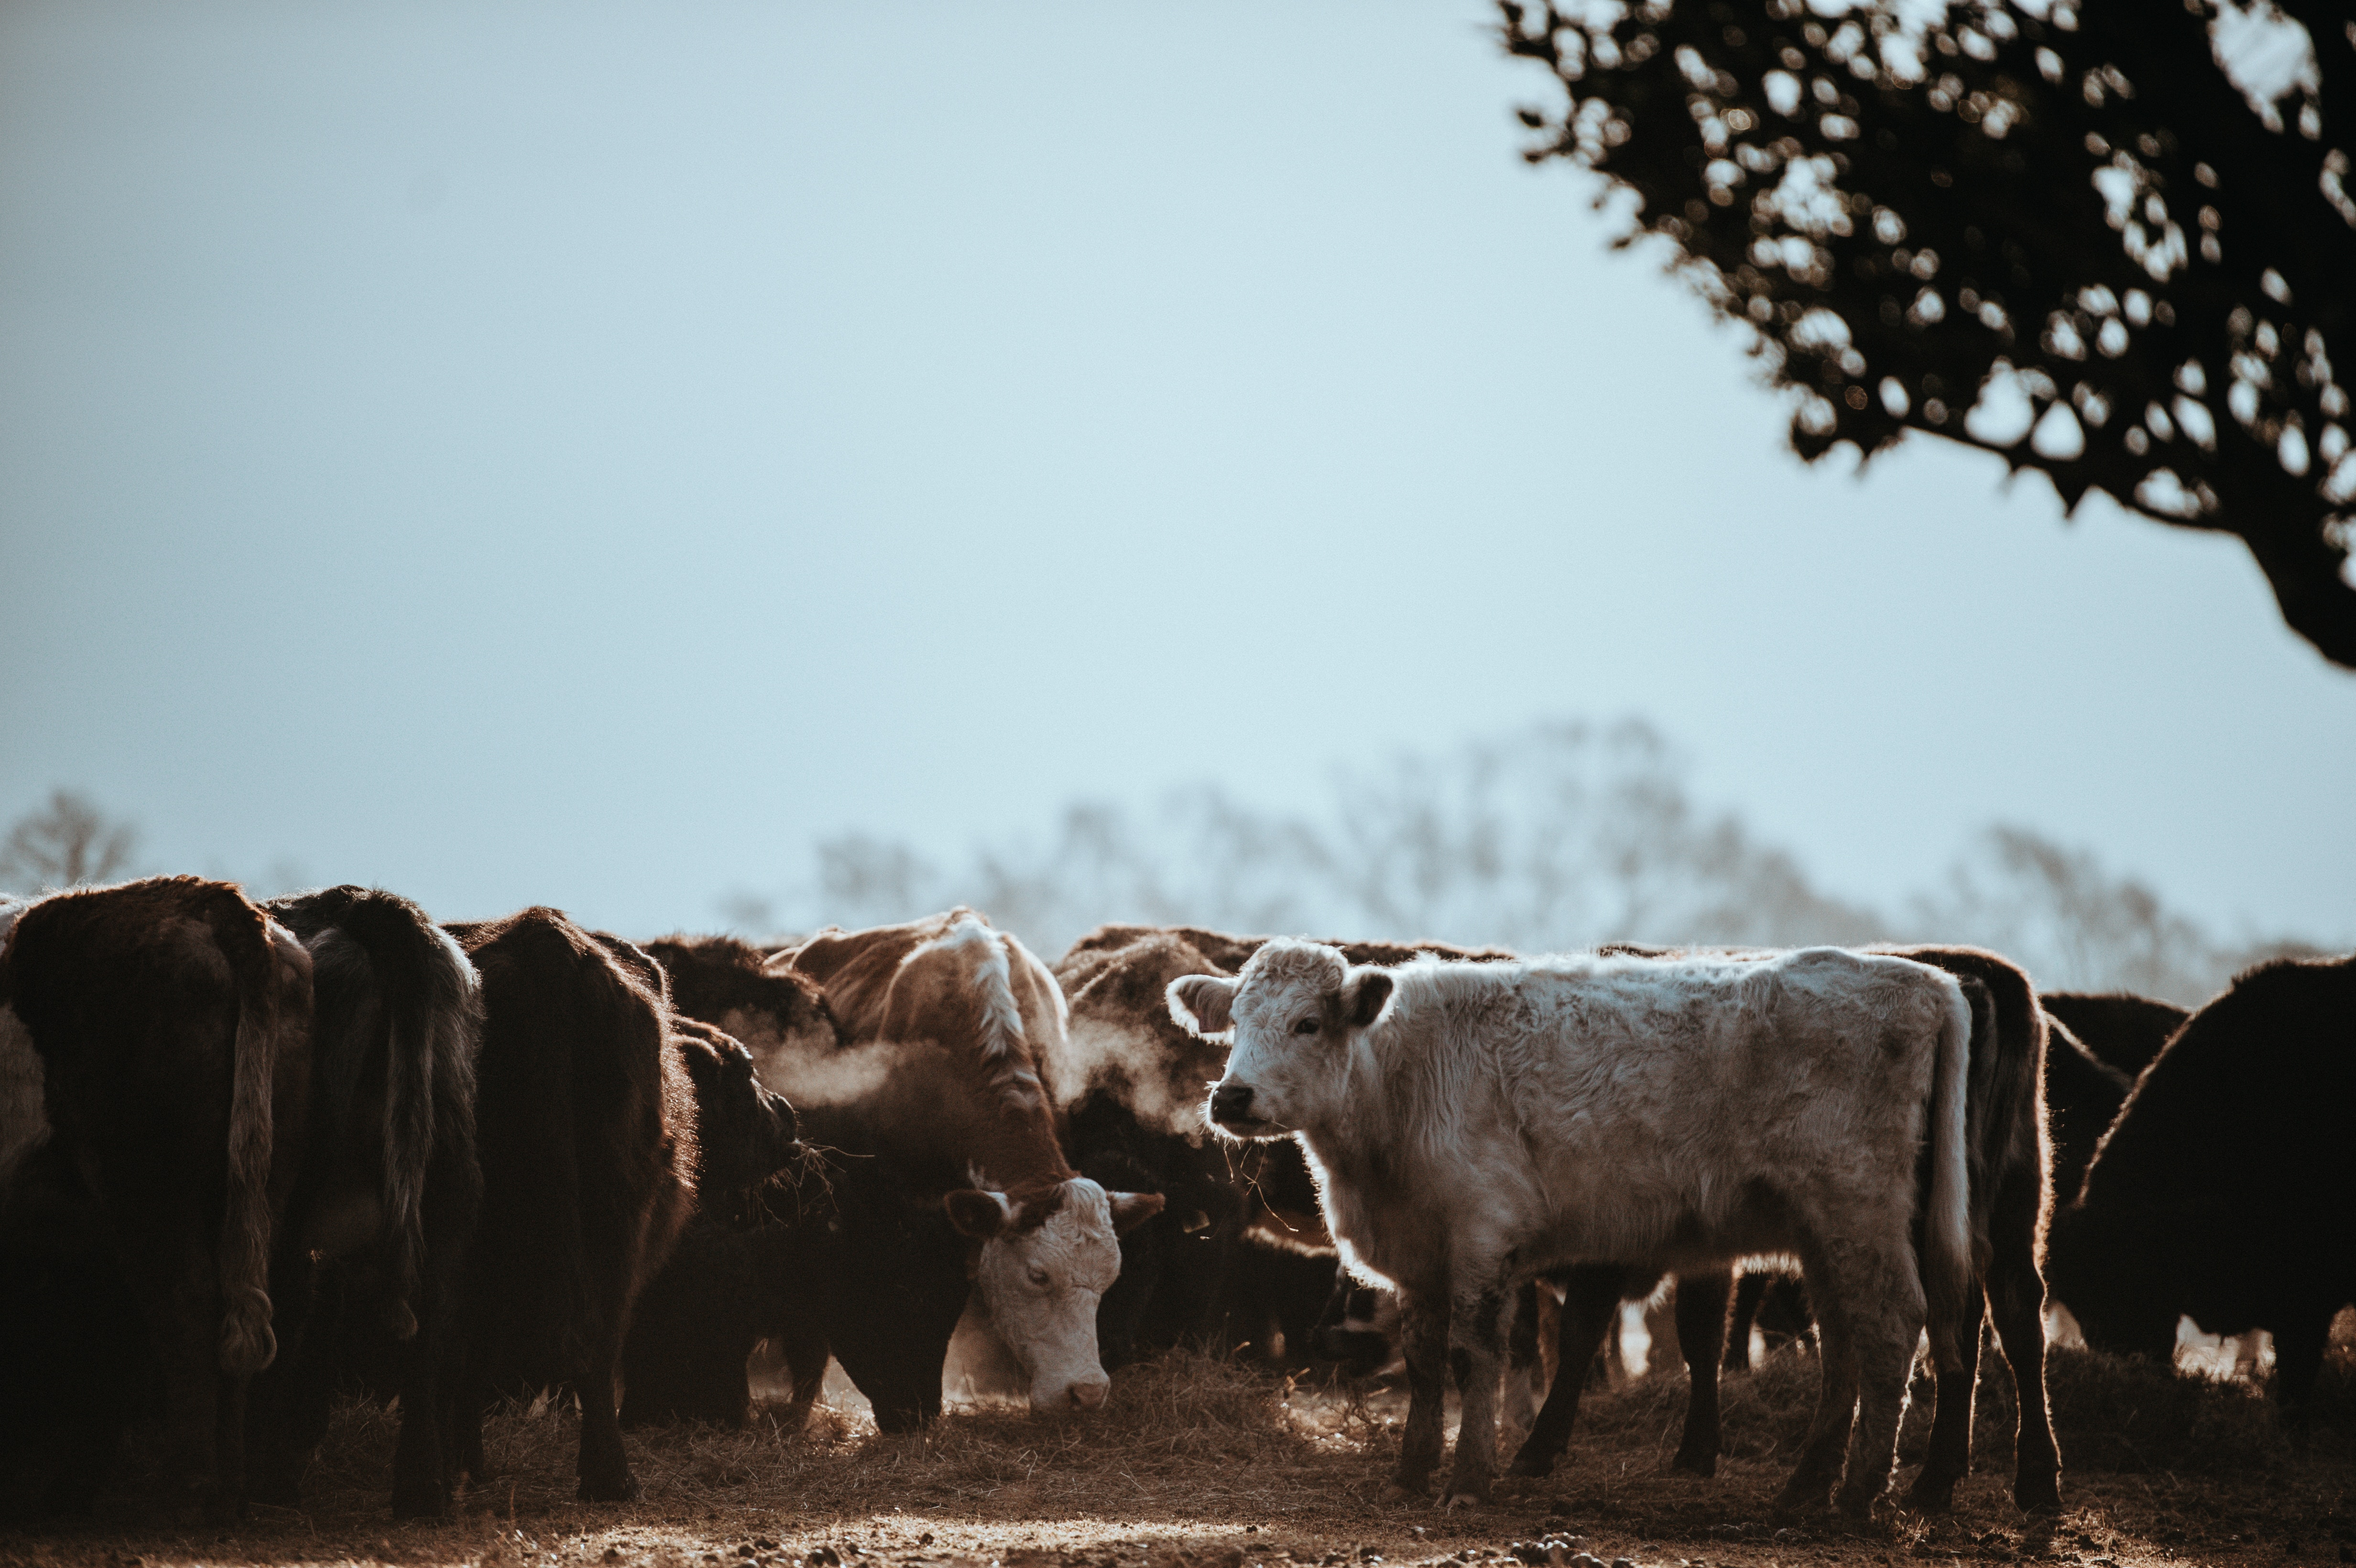 Grazing Cattle. Photo by Annie Sprat, via Unsplash (unsplash.com/photos/Q-VqoBCBurk)